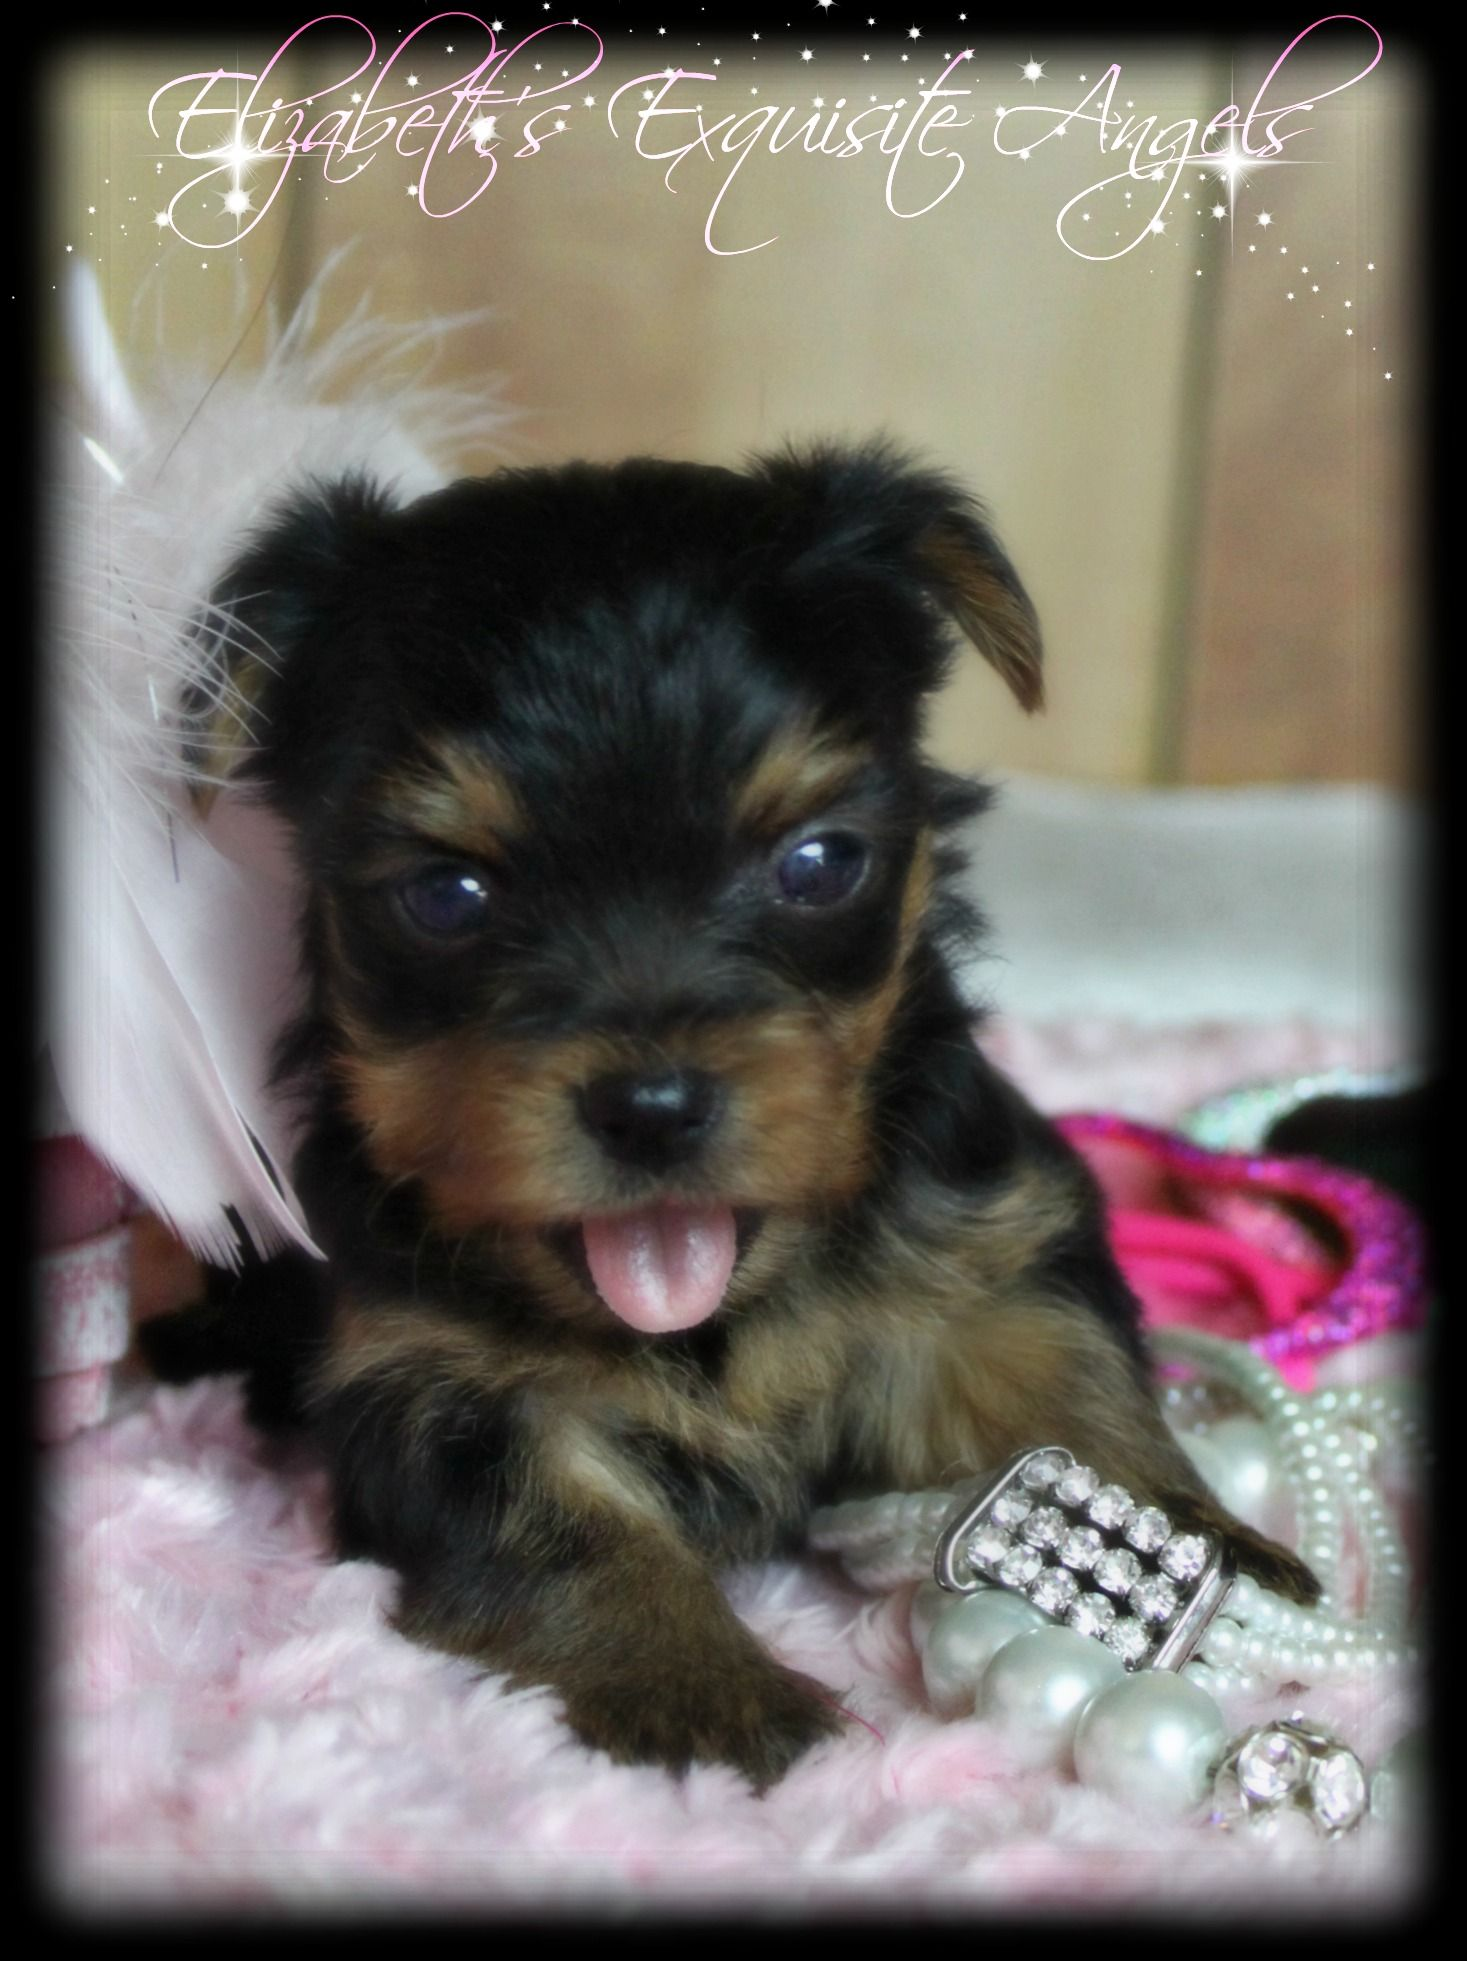 Tiniest Little Yorkie Baby See More Of Her Pictures On Our